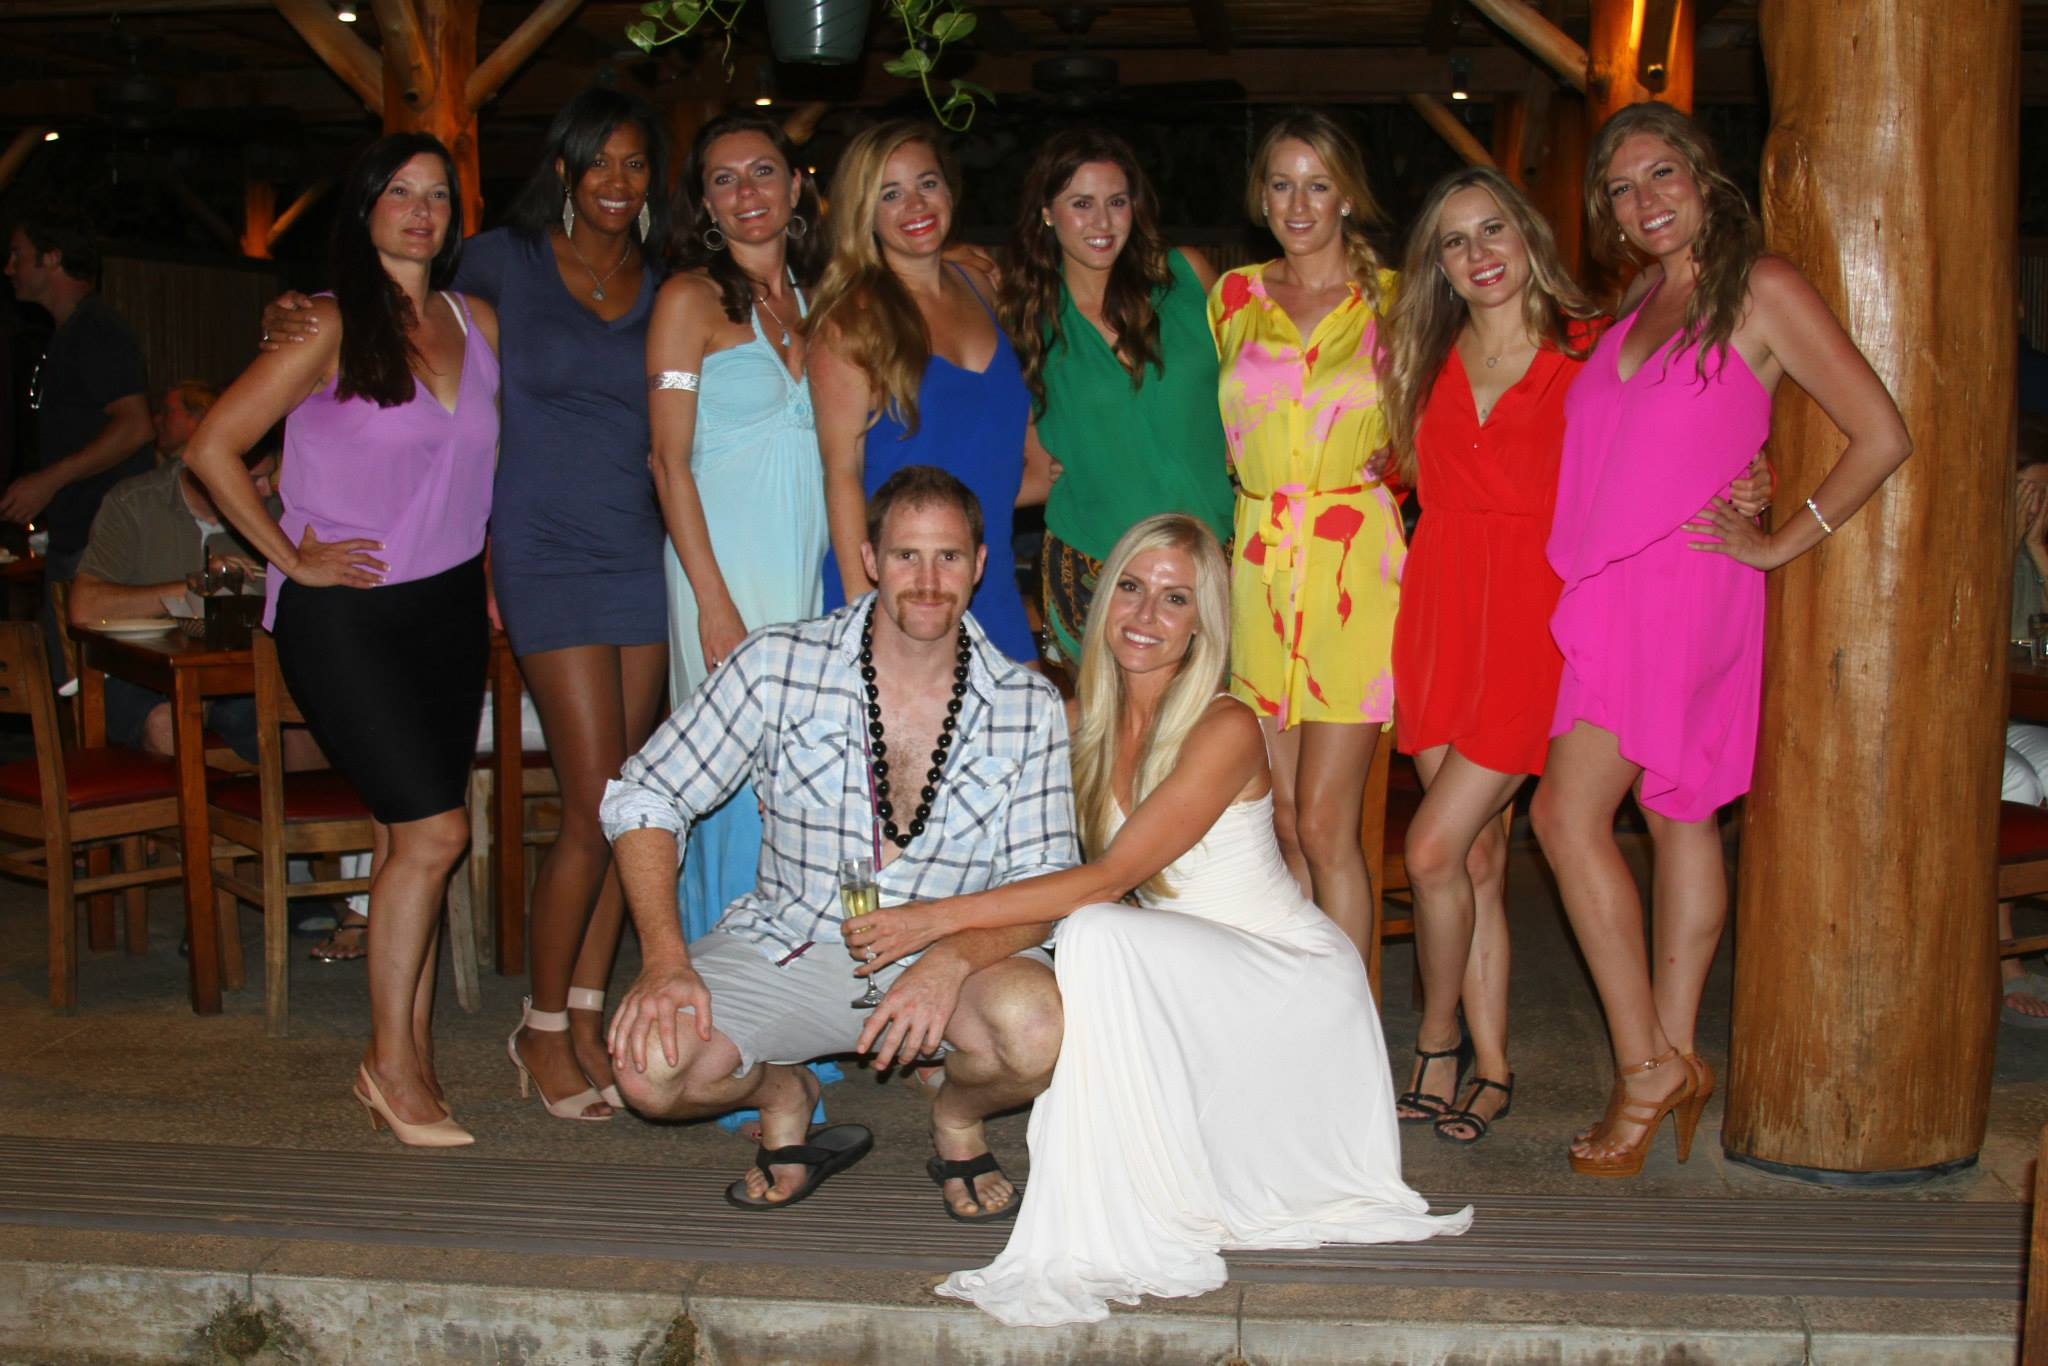 NIGHT 2: Rehearsal dinner at Ola's on the sand. 60 ppl made it and my girls unplanned showed up in different vibrant colors!! YES!!